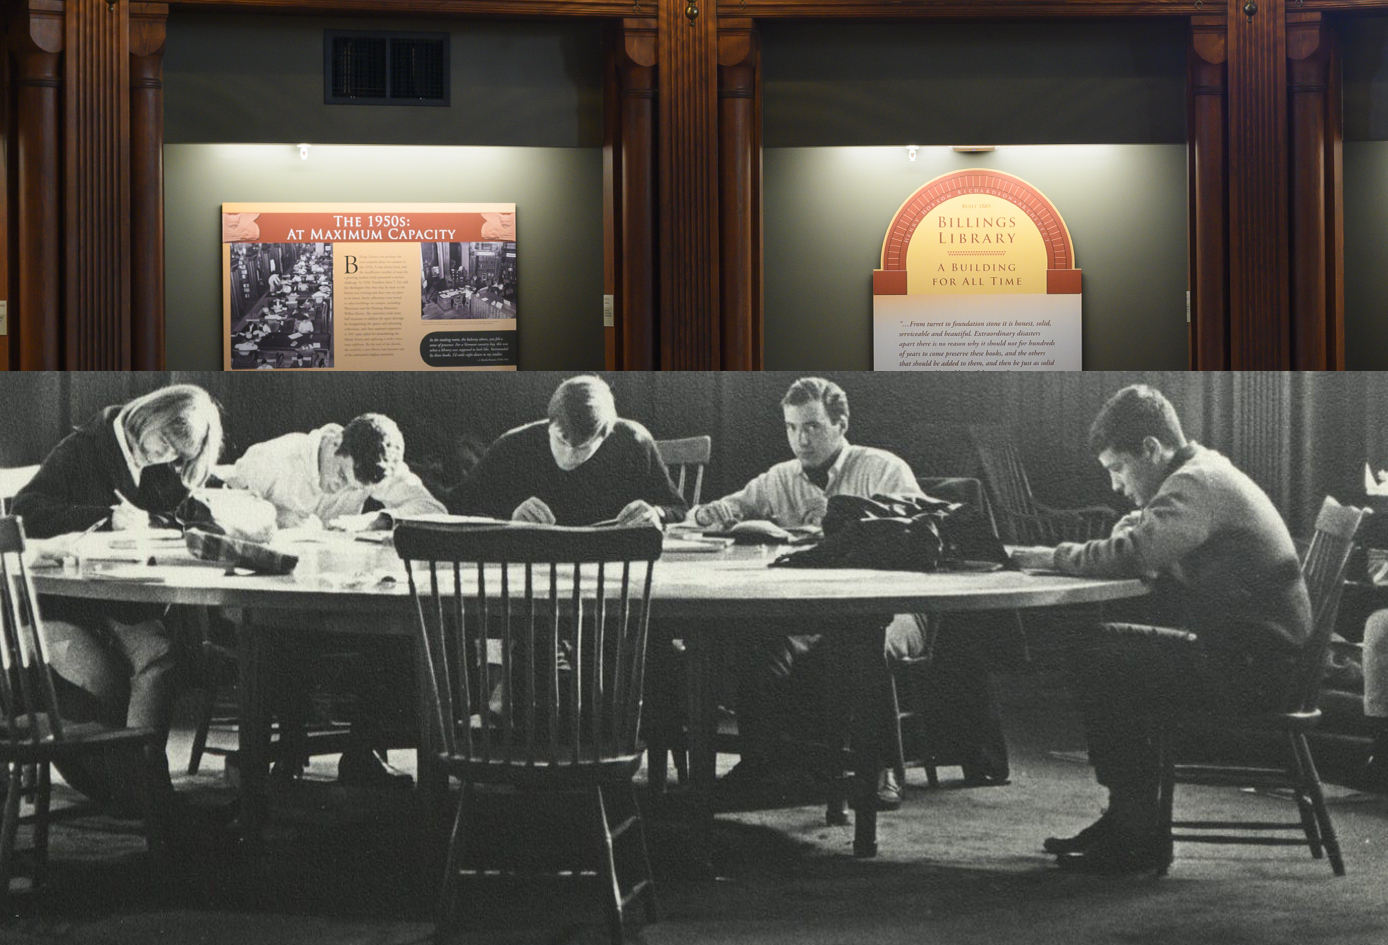 A historic black-and-white photo from UVM Special collections shows students smoking and studying in the apse in Billings Library. Today, the apse is a space dedicated to telling the history of the building.